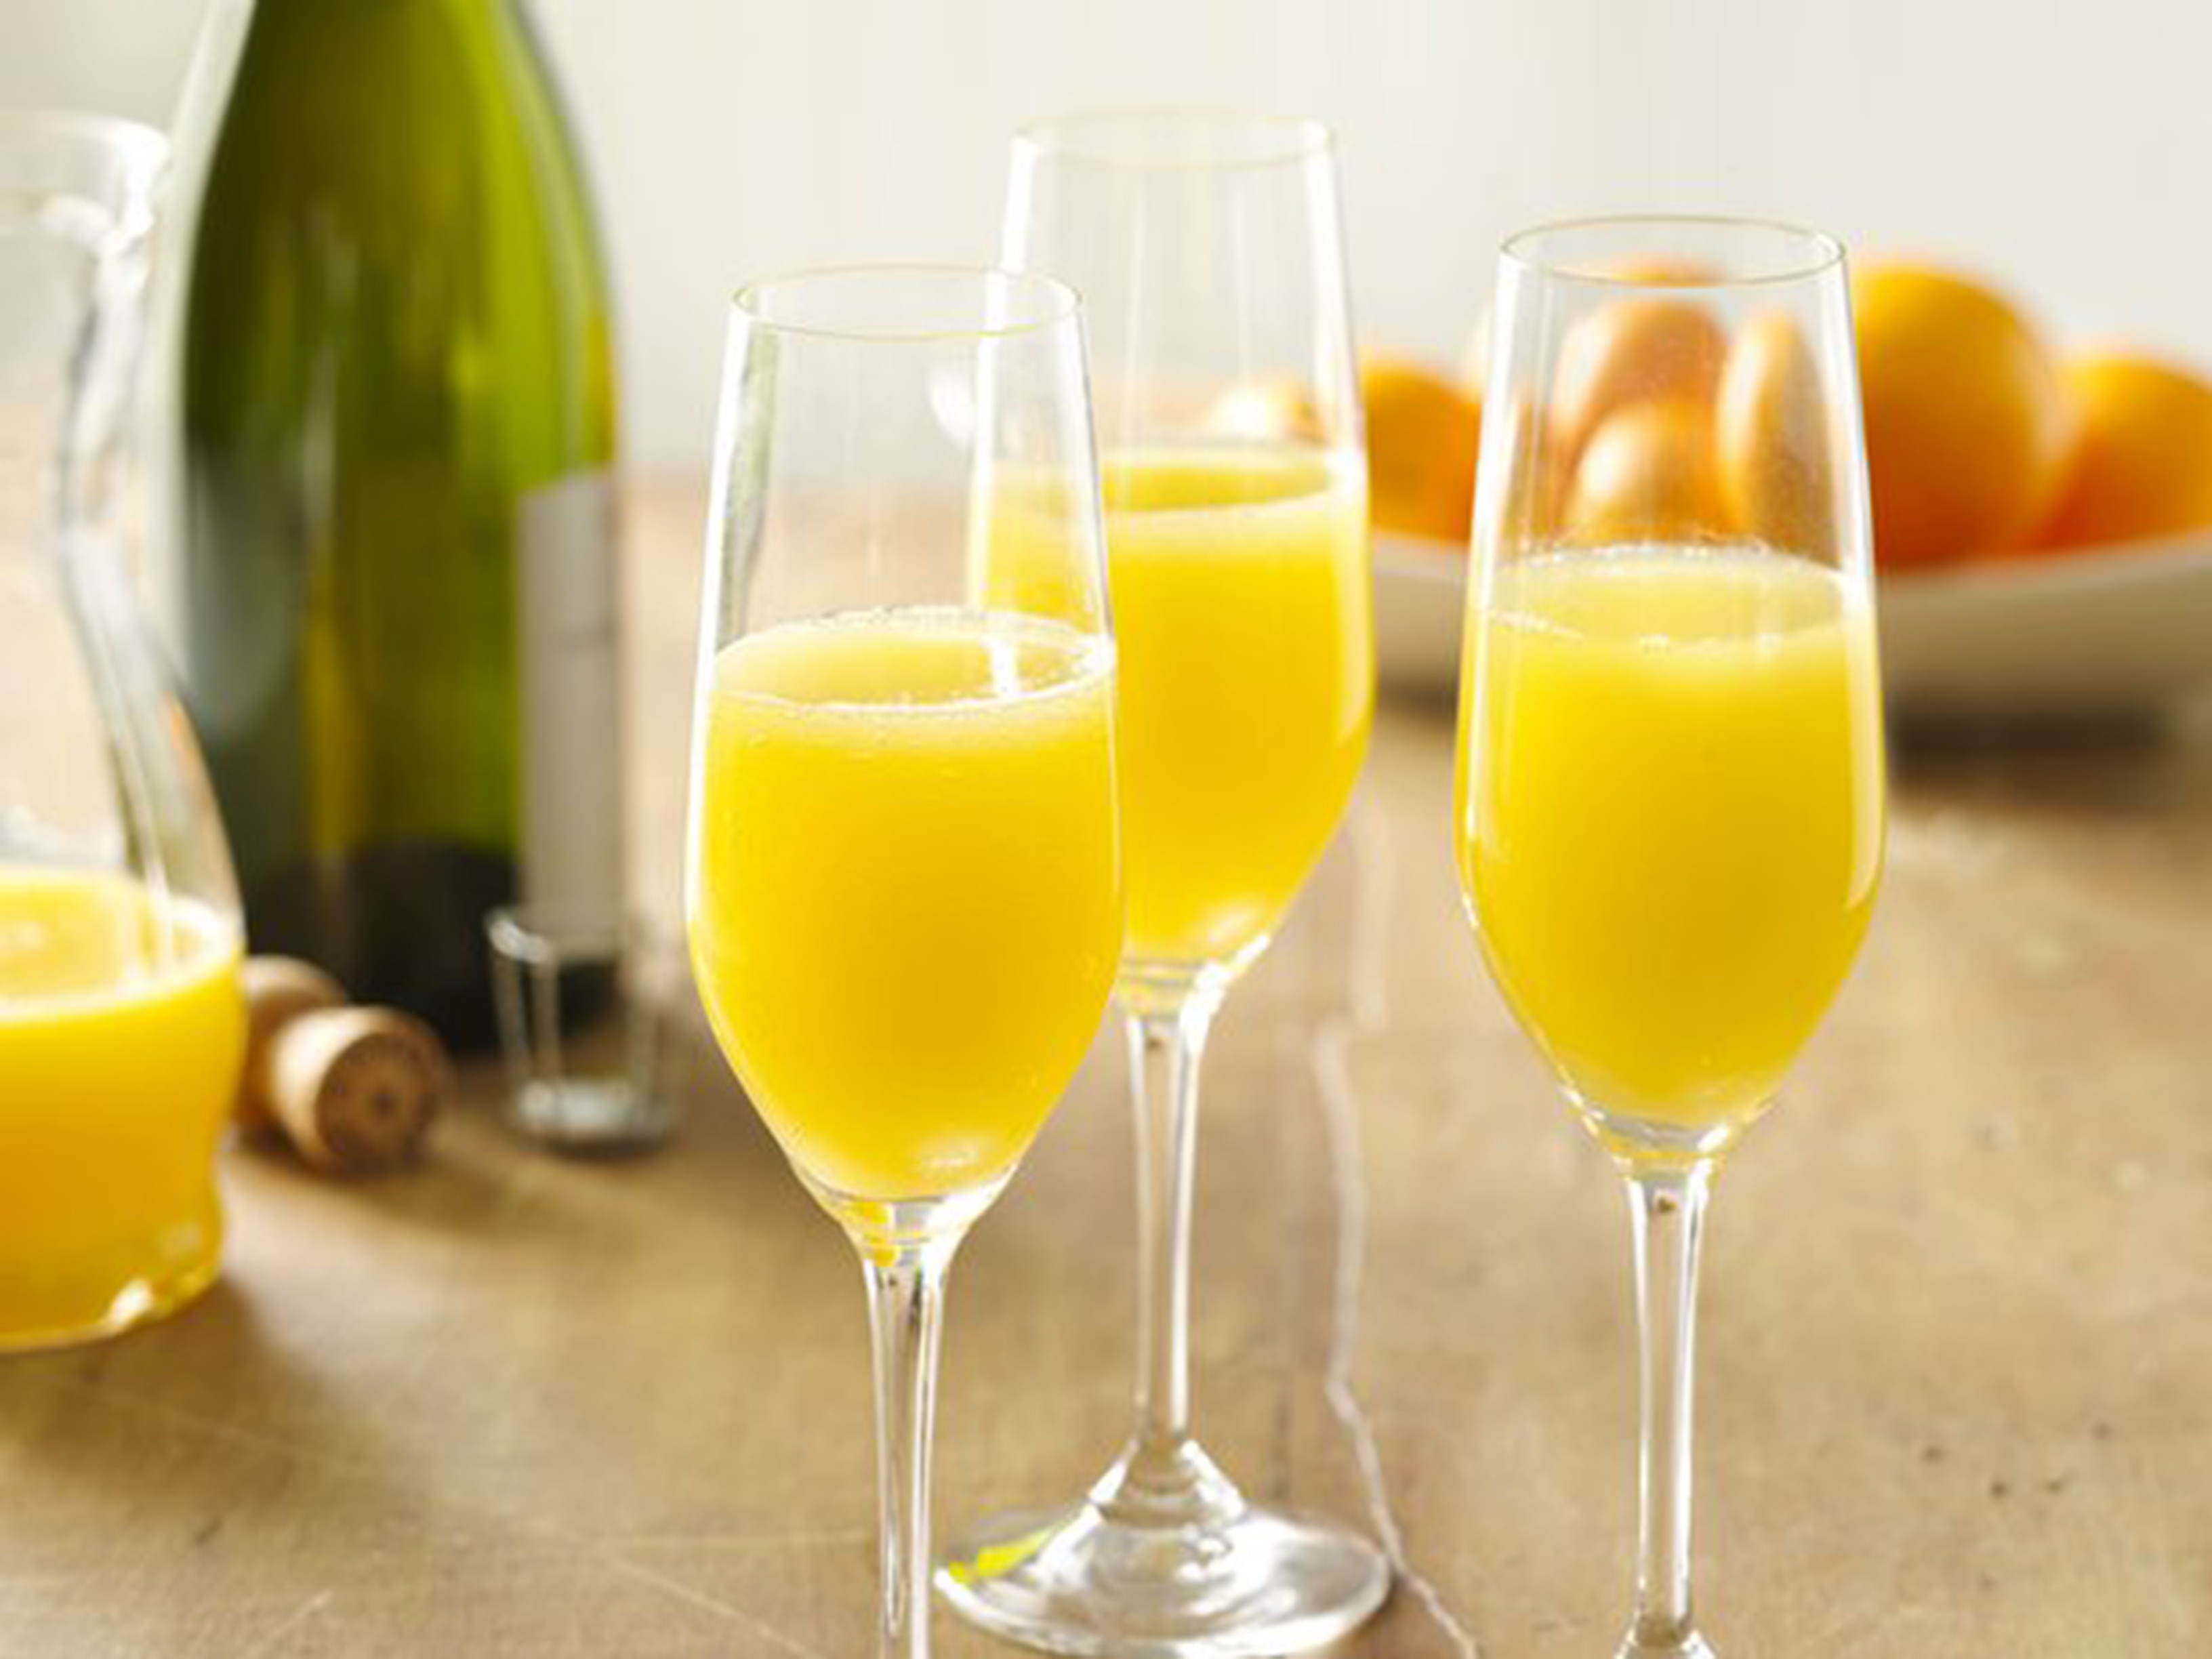 Amazing Mimosa Pictures & Backgrounds